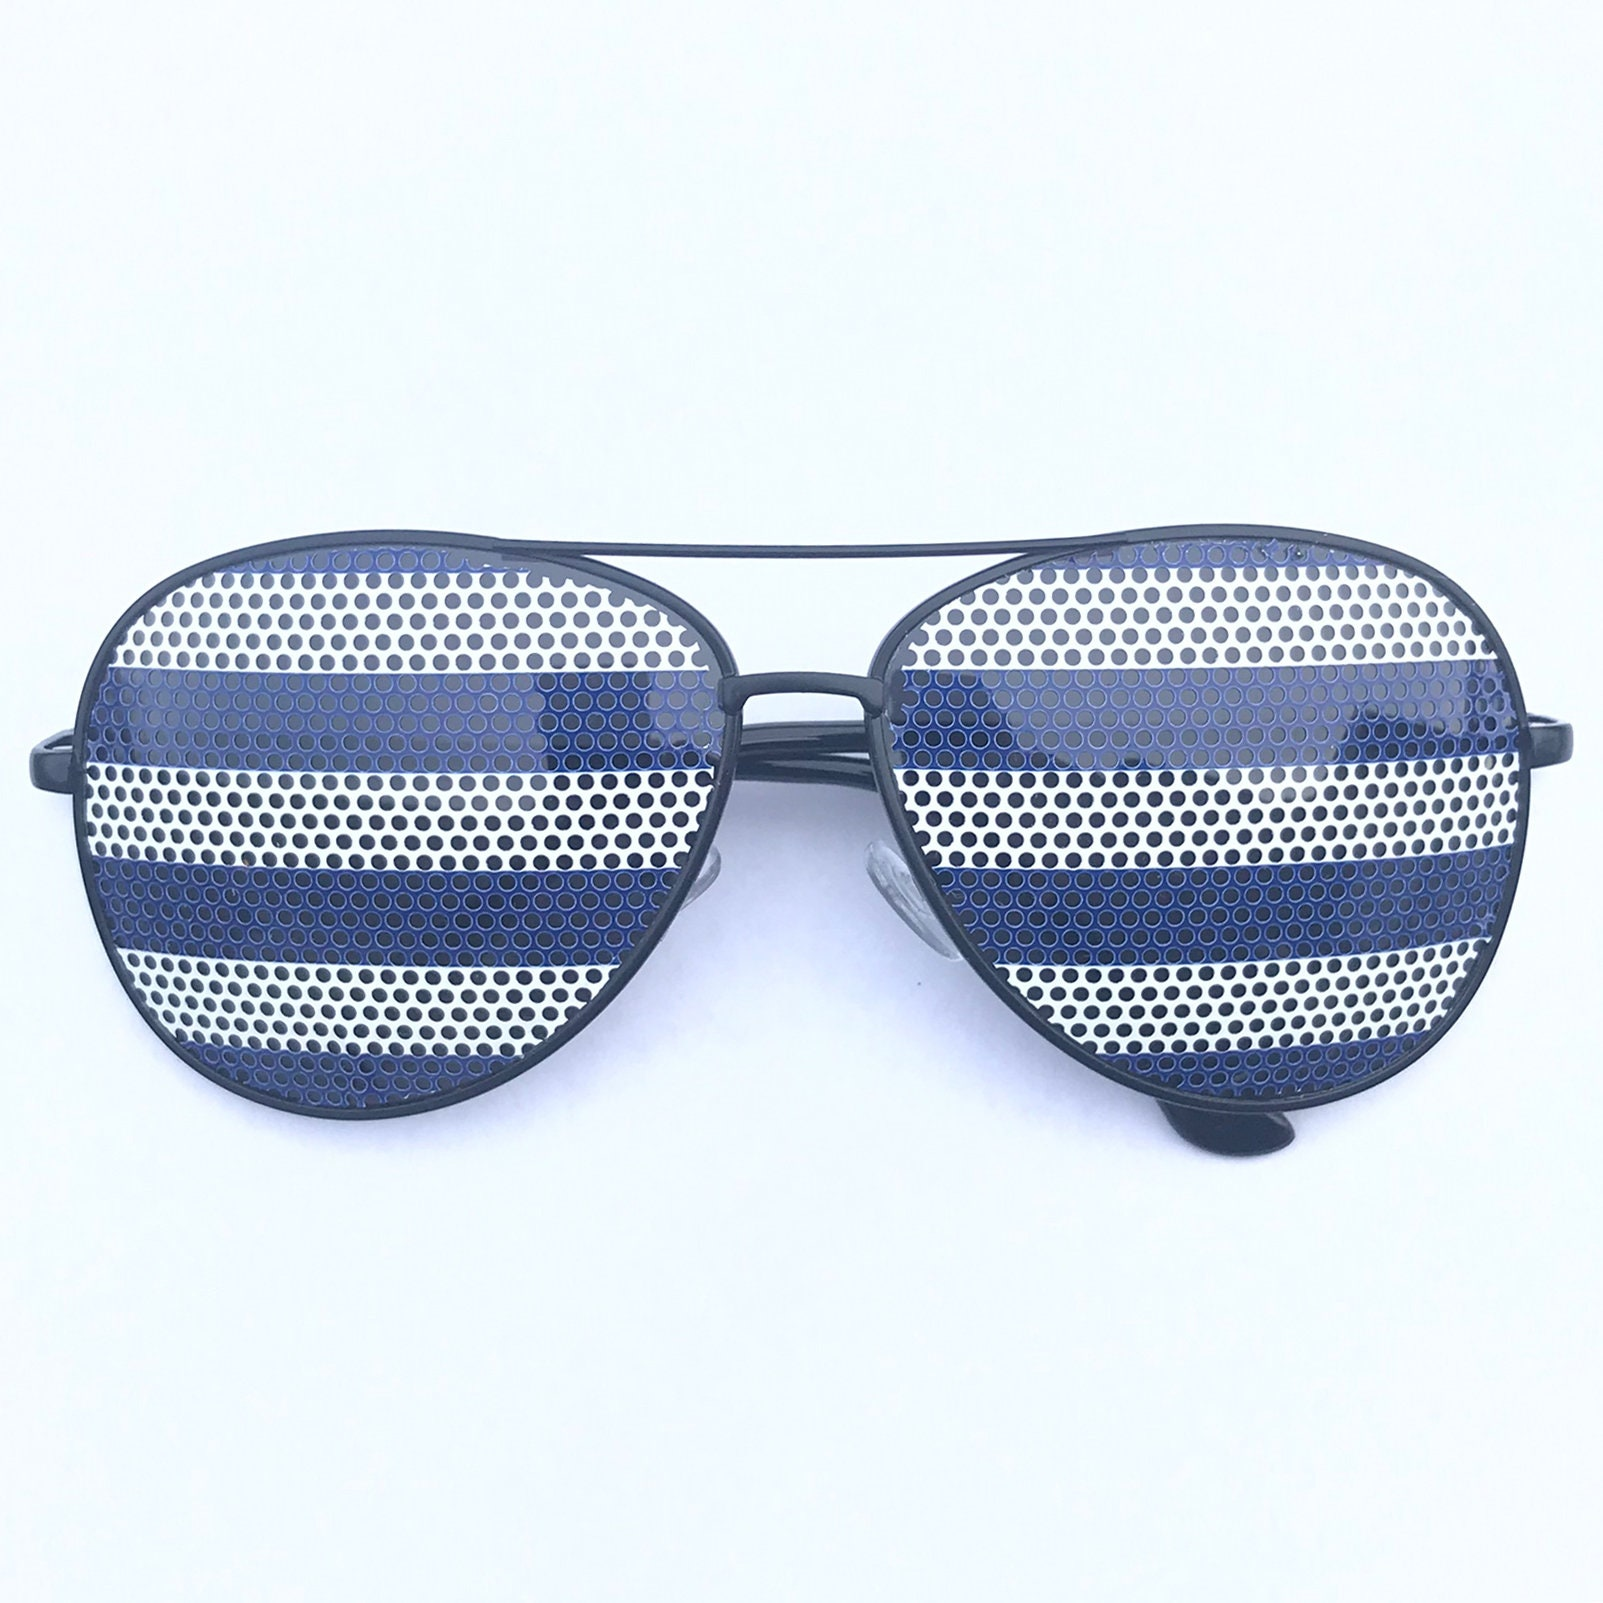 9f061ca5d8 Blue Nautical Polo Striped Graphic Aviator Sunglasses (other styles  available)